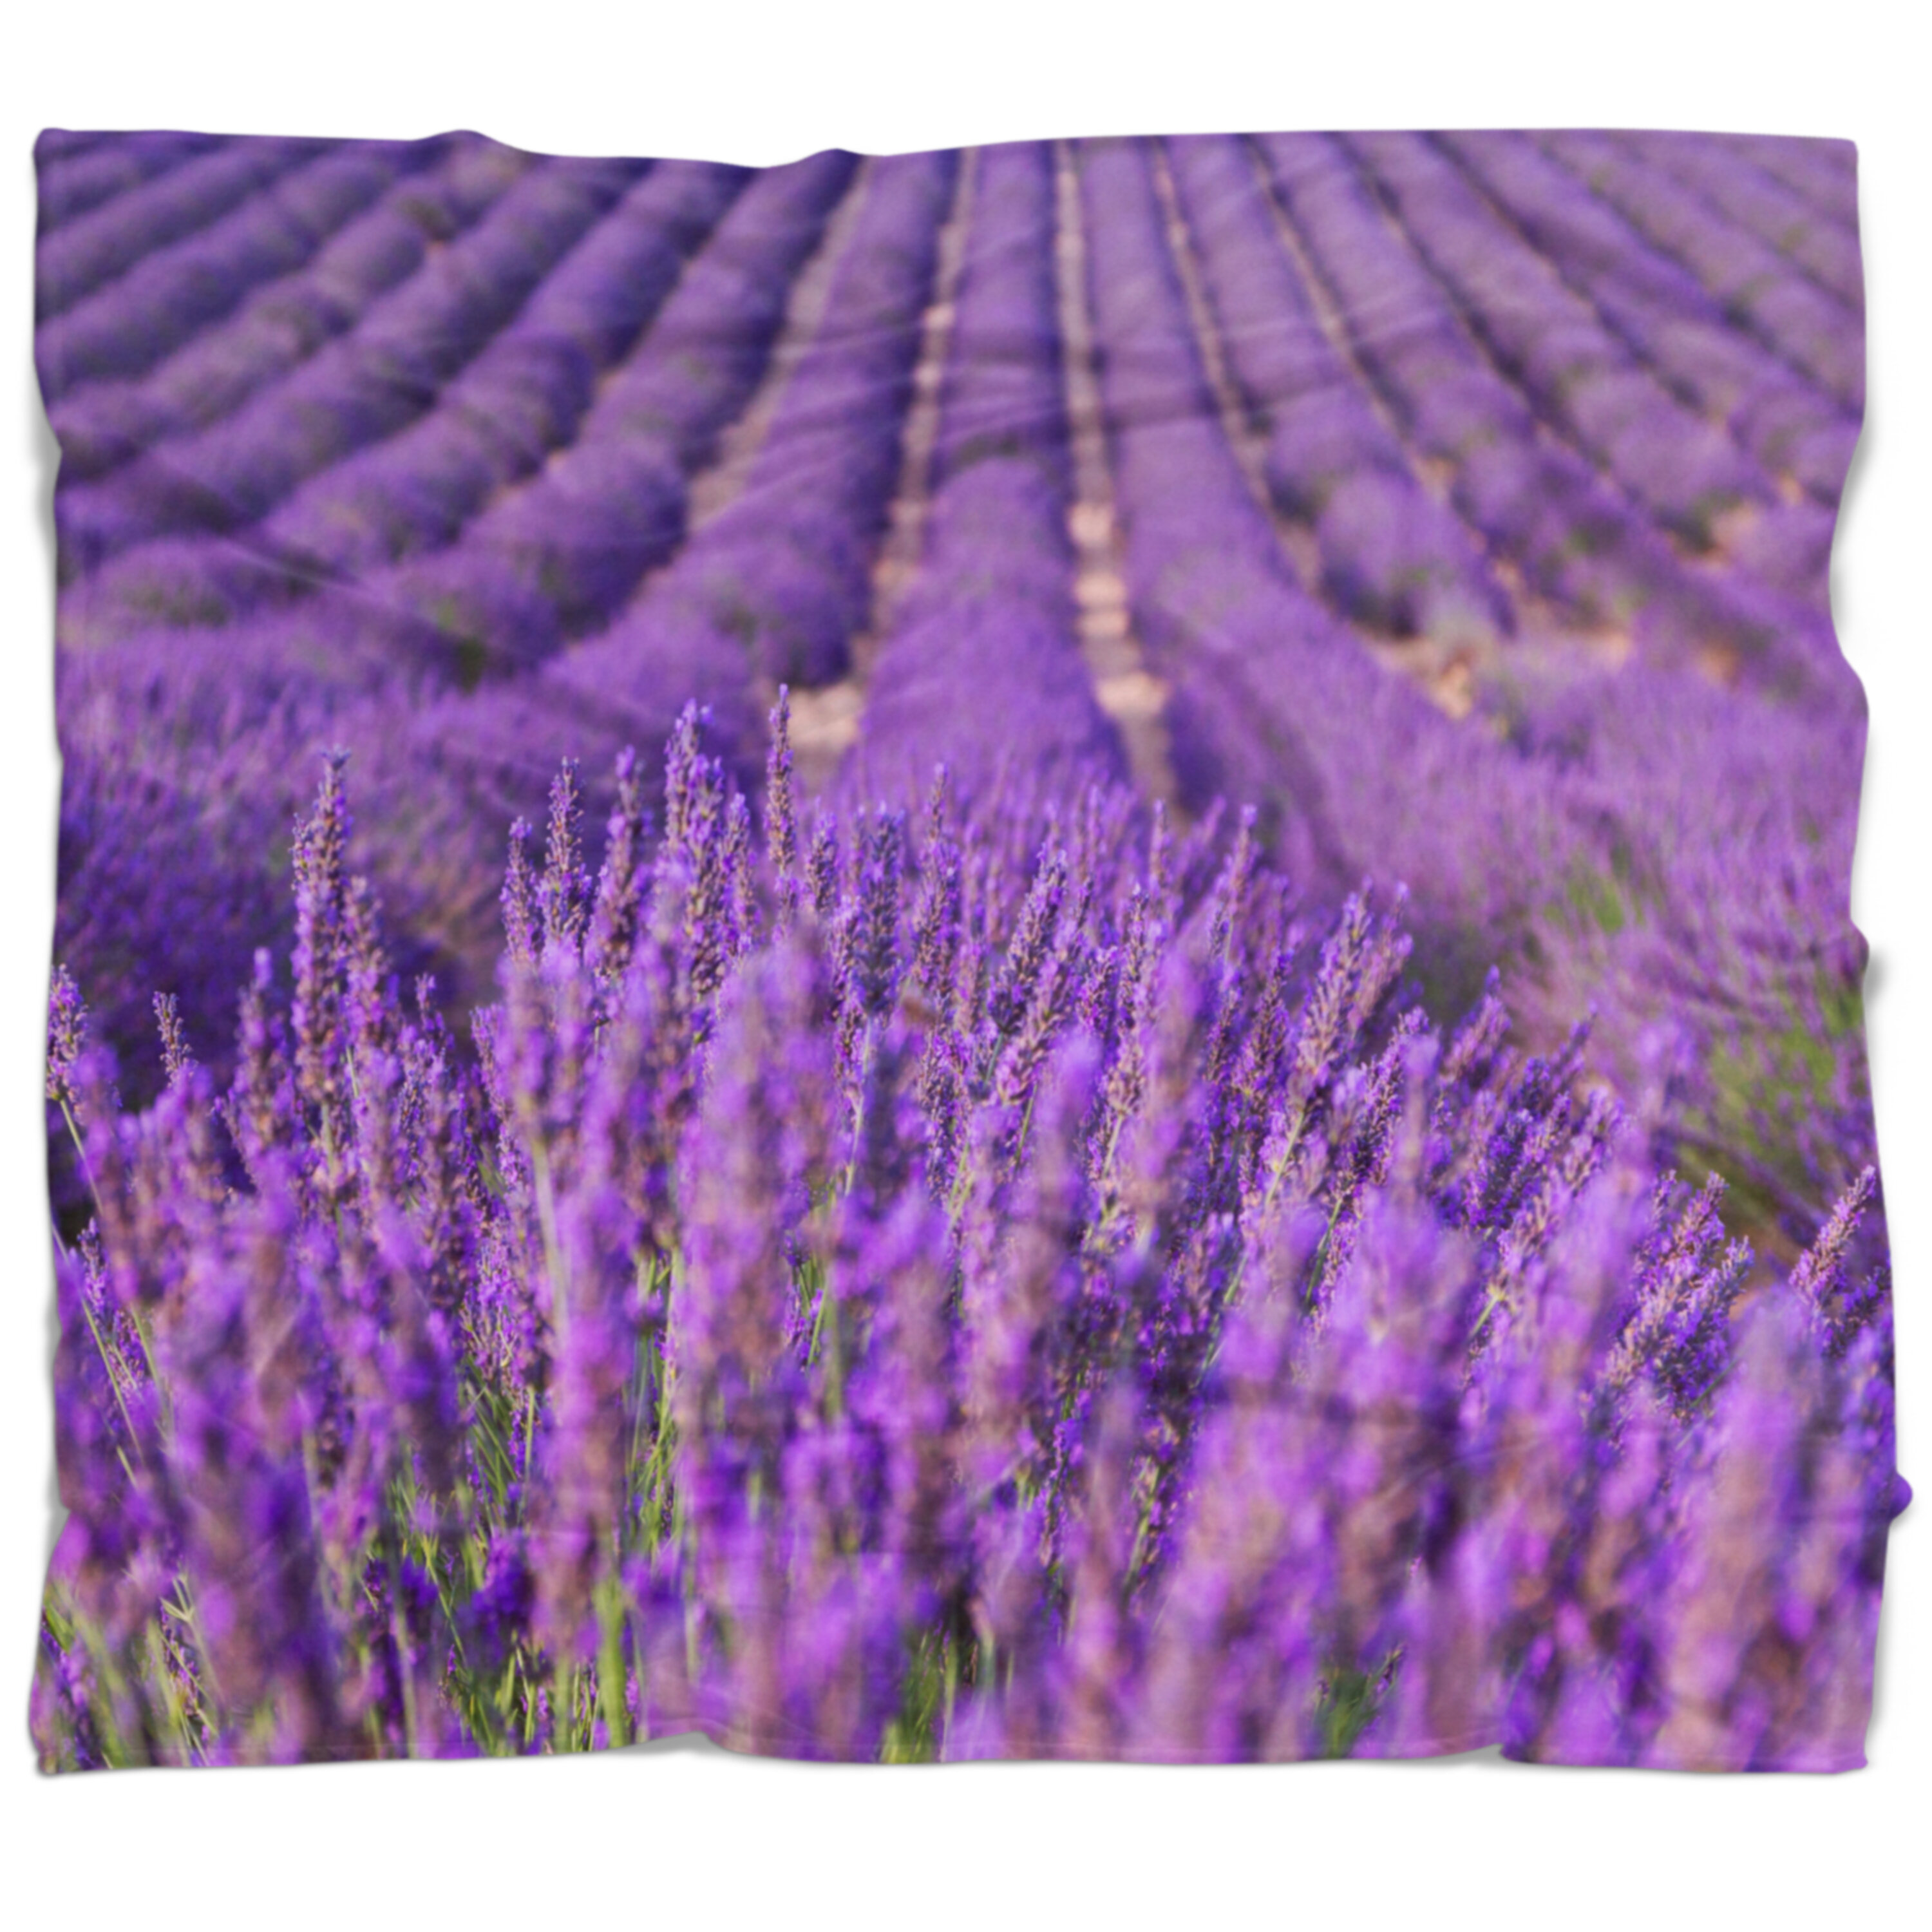 East Urban Home Floral Beautiful Fragrant Lavender Fields Blanket Wayfair